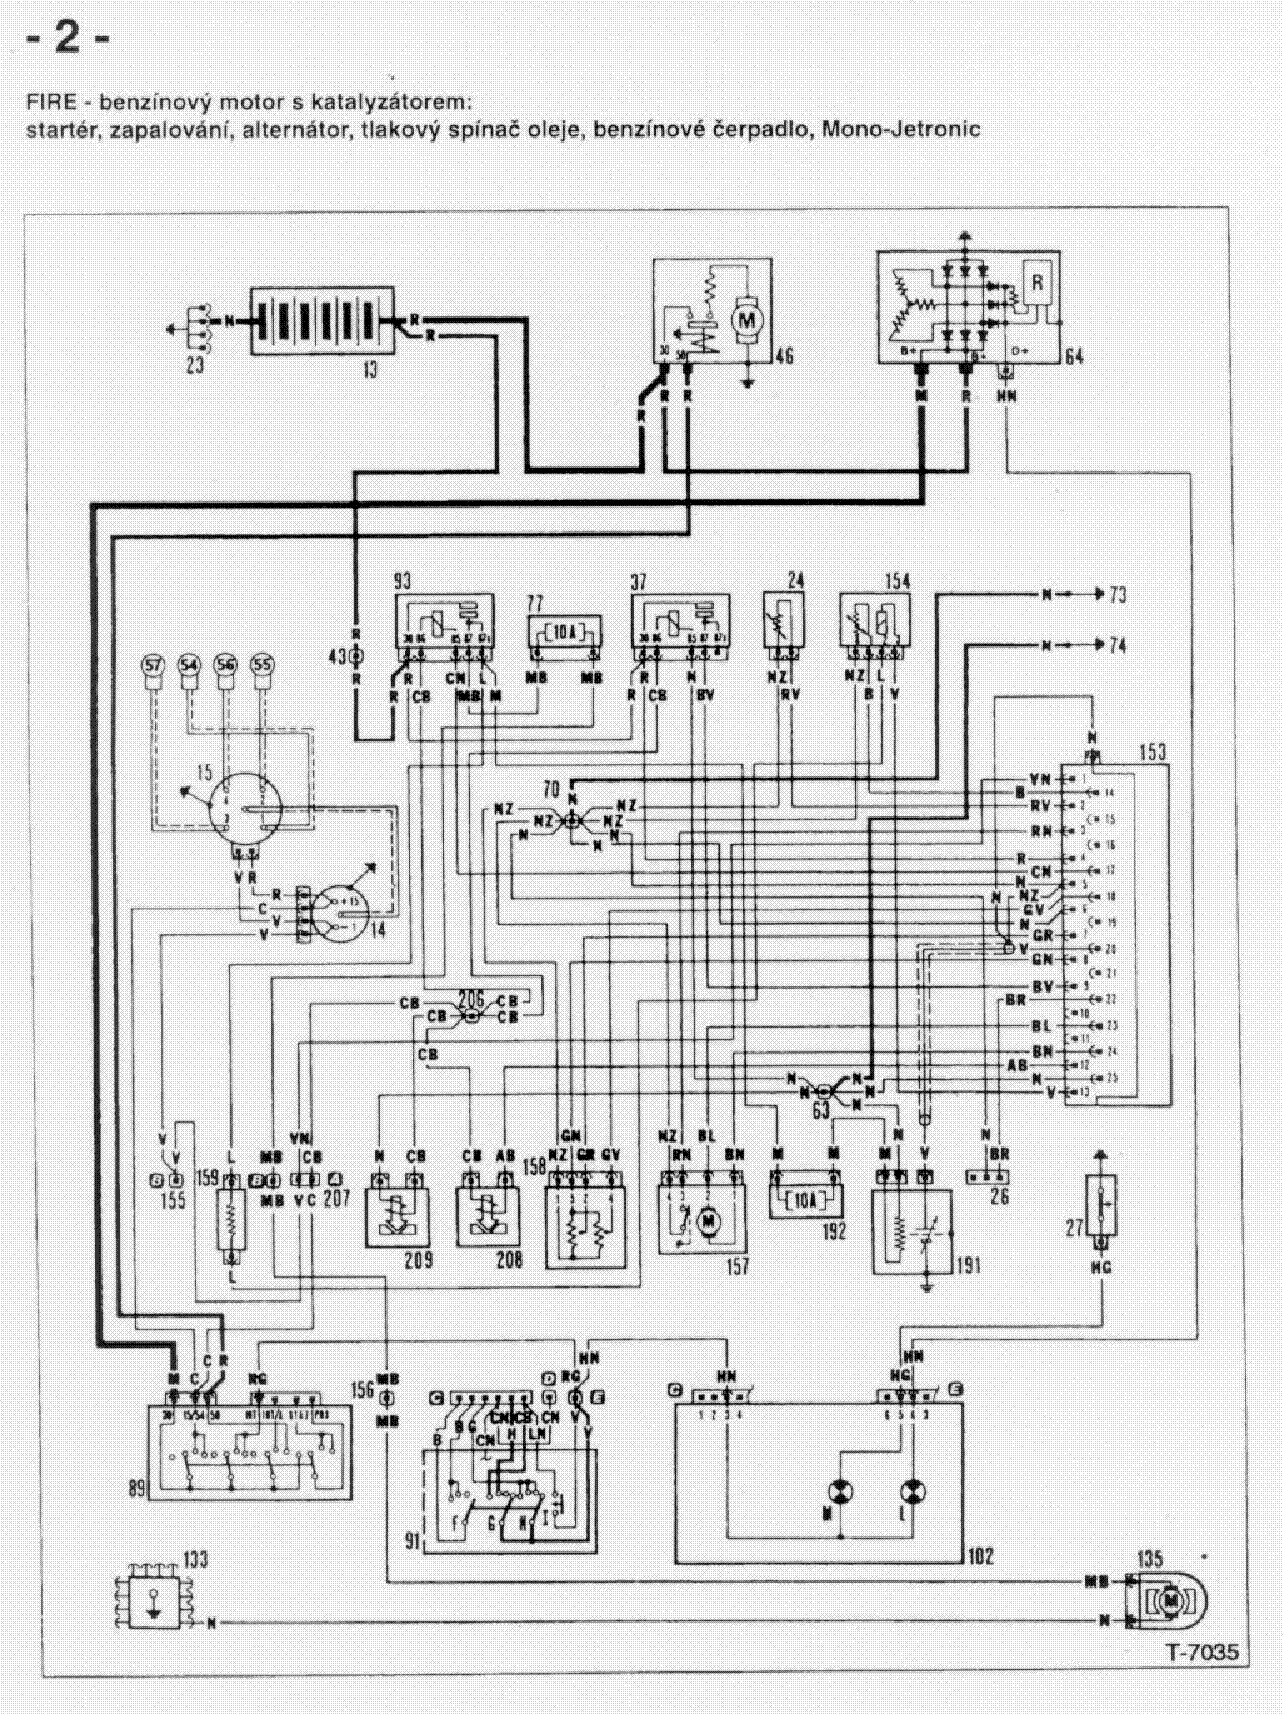 fiat uno wiring diagram service manual download, schematics, eeprom Fiat 500 Engine Diagram